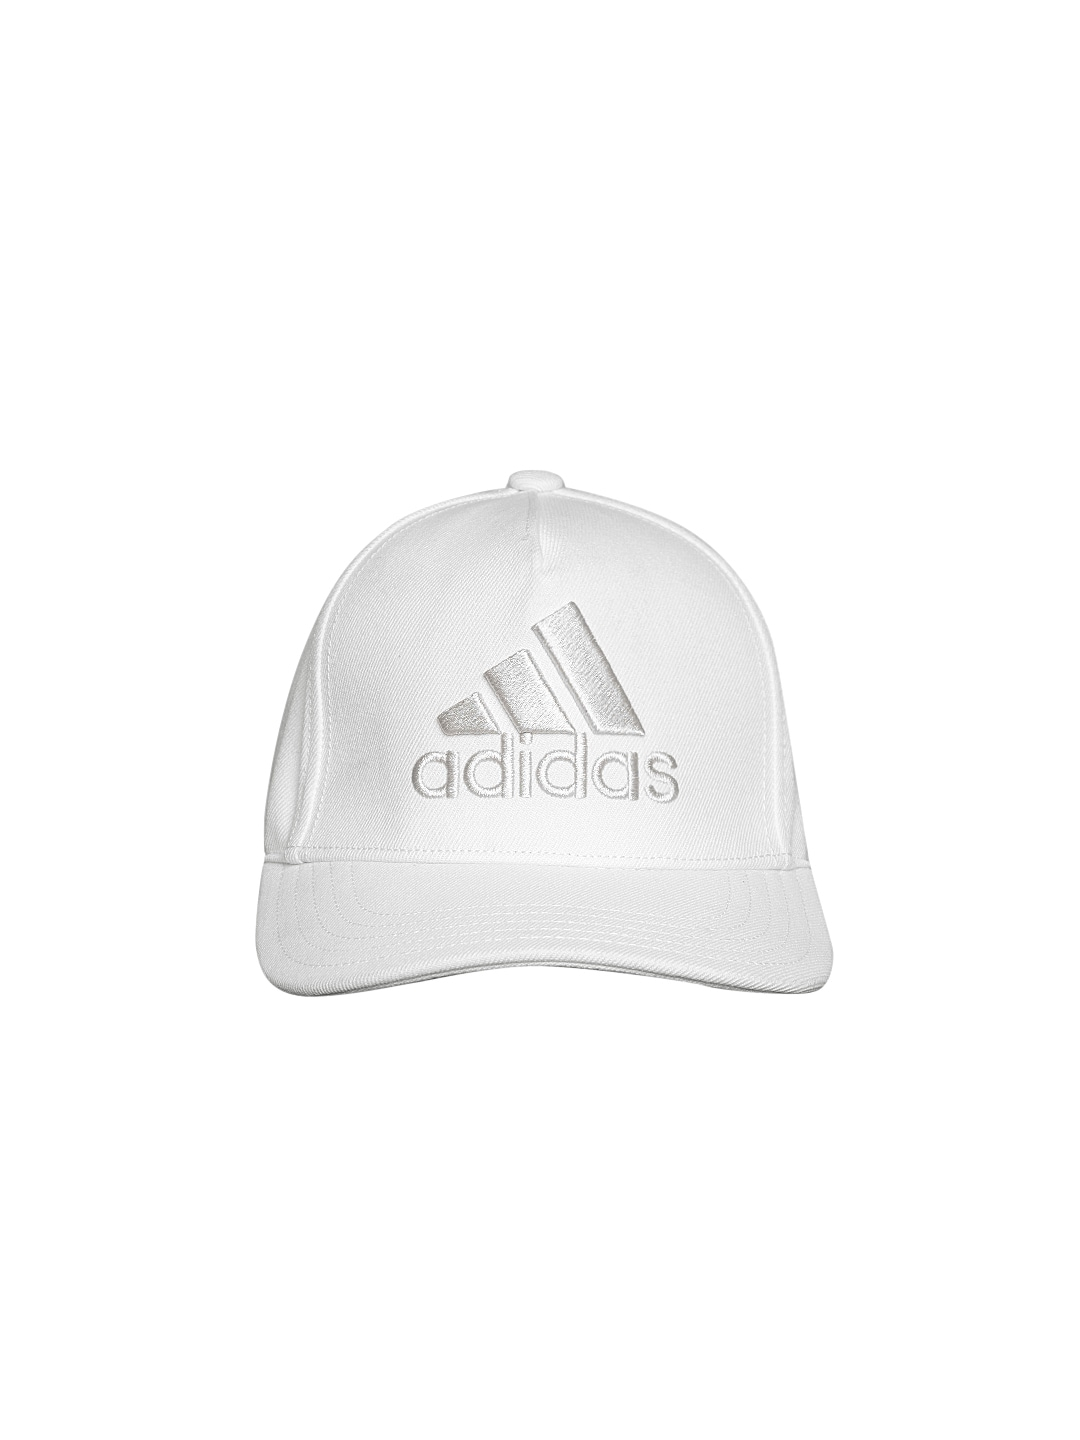 6367544f26731 Marant Logo For Shinguard Caps Tshirts - Buy Marant Logo For Shinguard Caps  Tshirts online in India